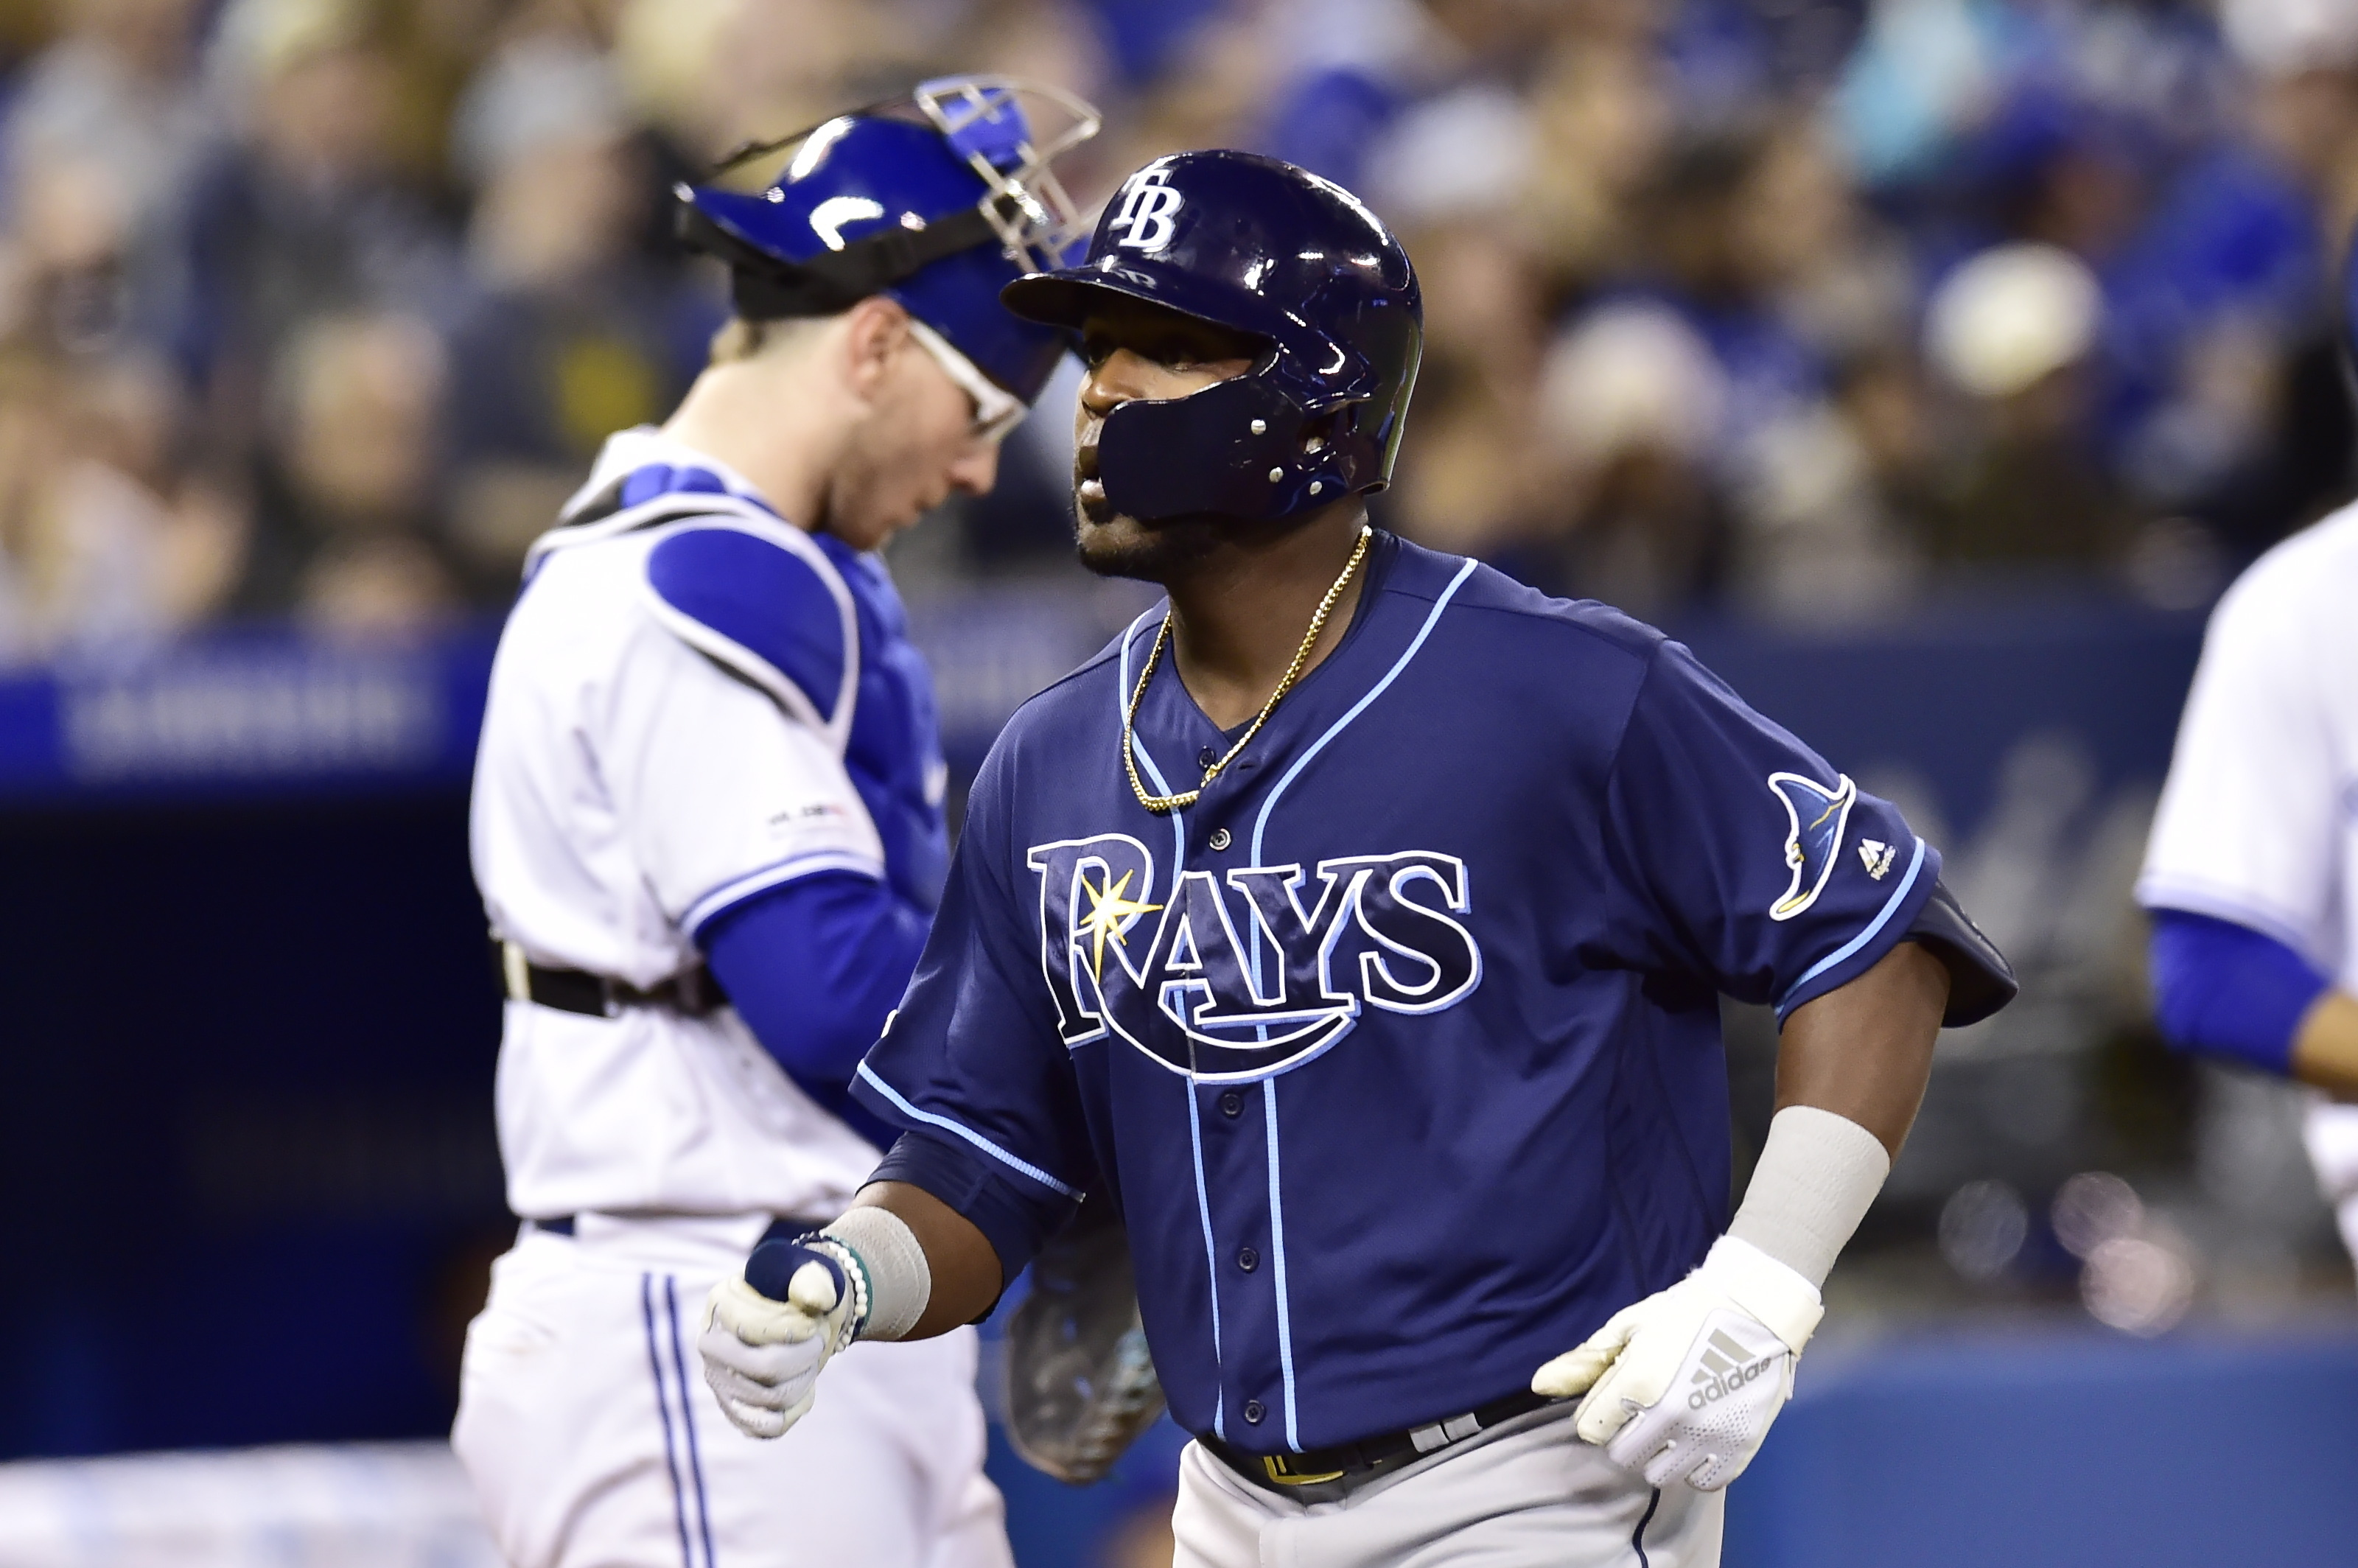 Heredia homers as Rays top Jays 8-4, win 5th straight series